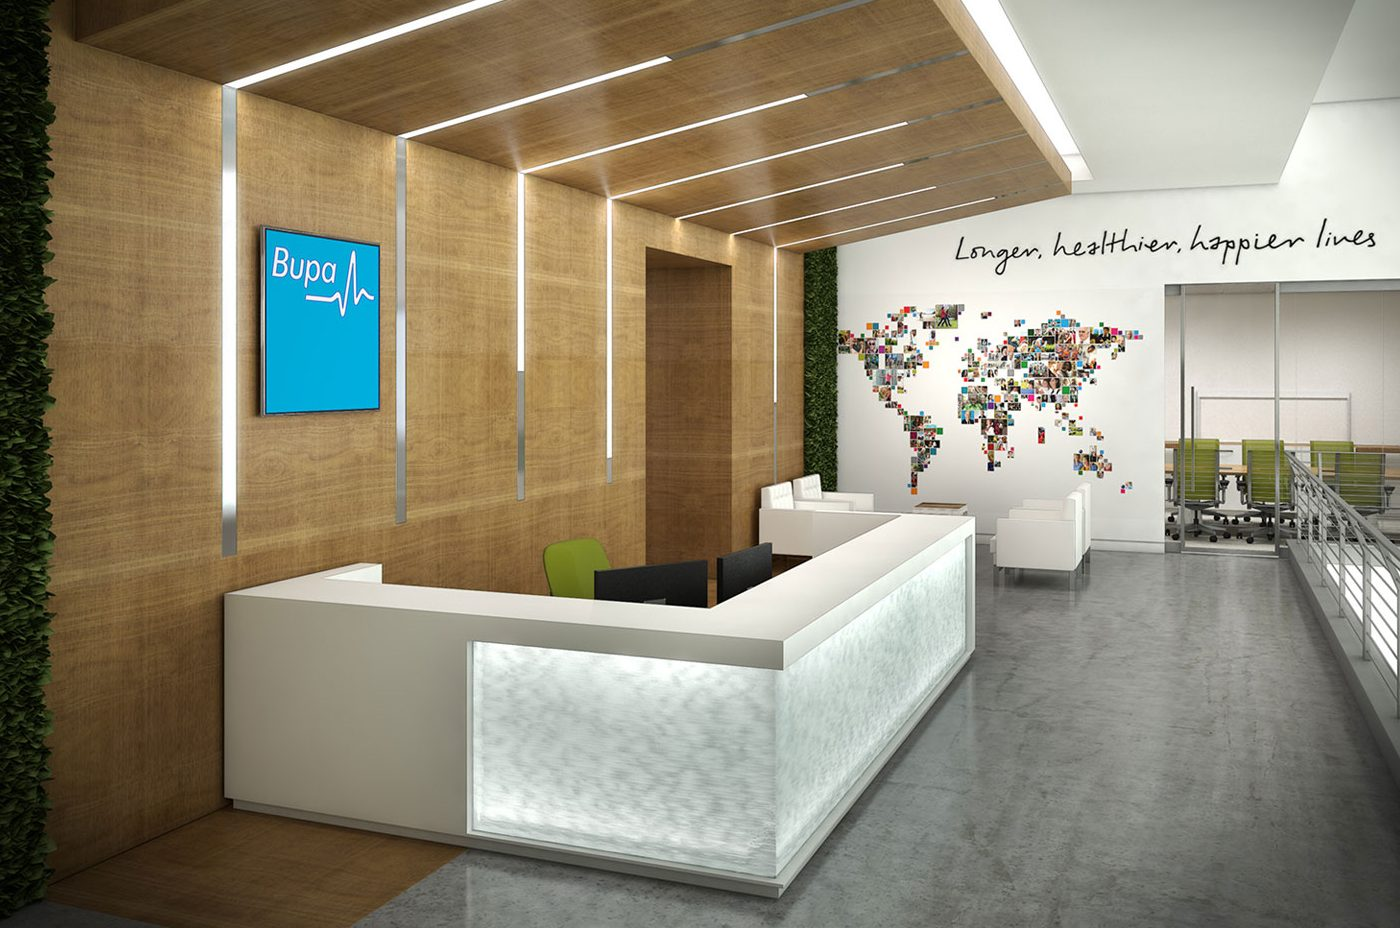 photo of the bupa office reception area